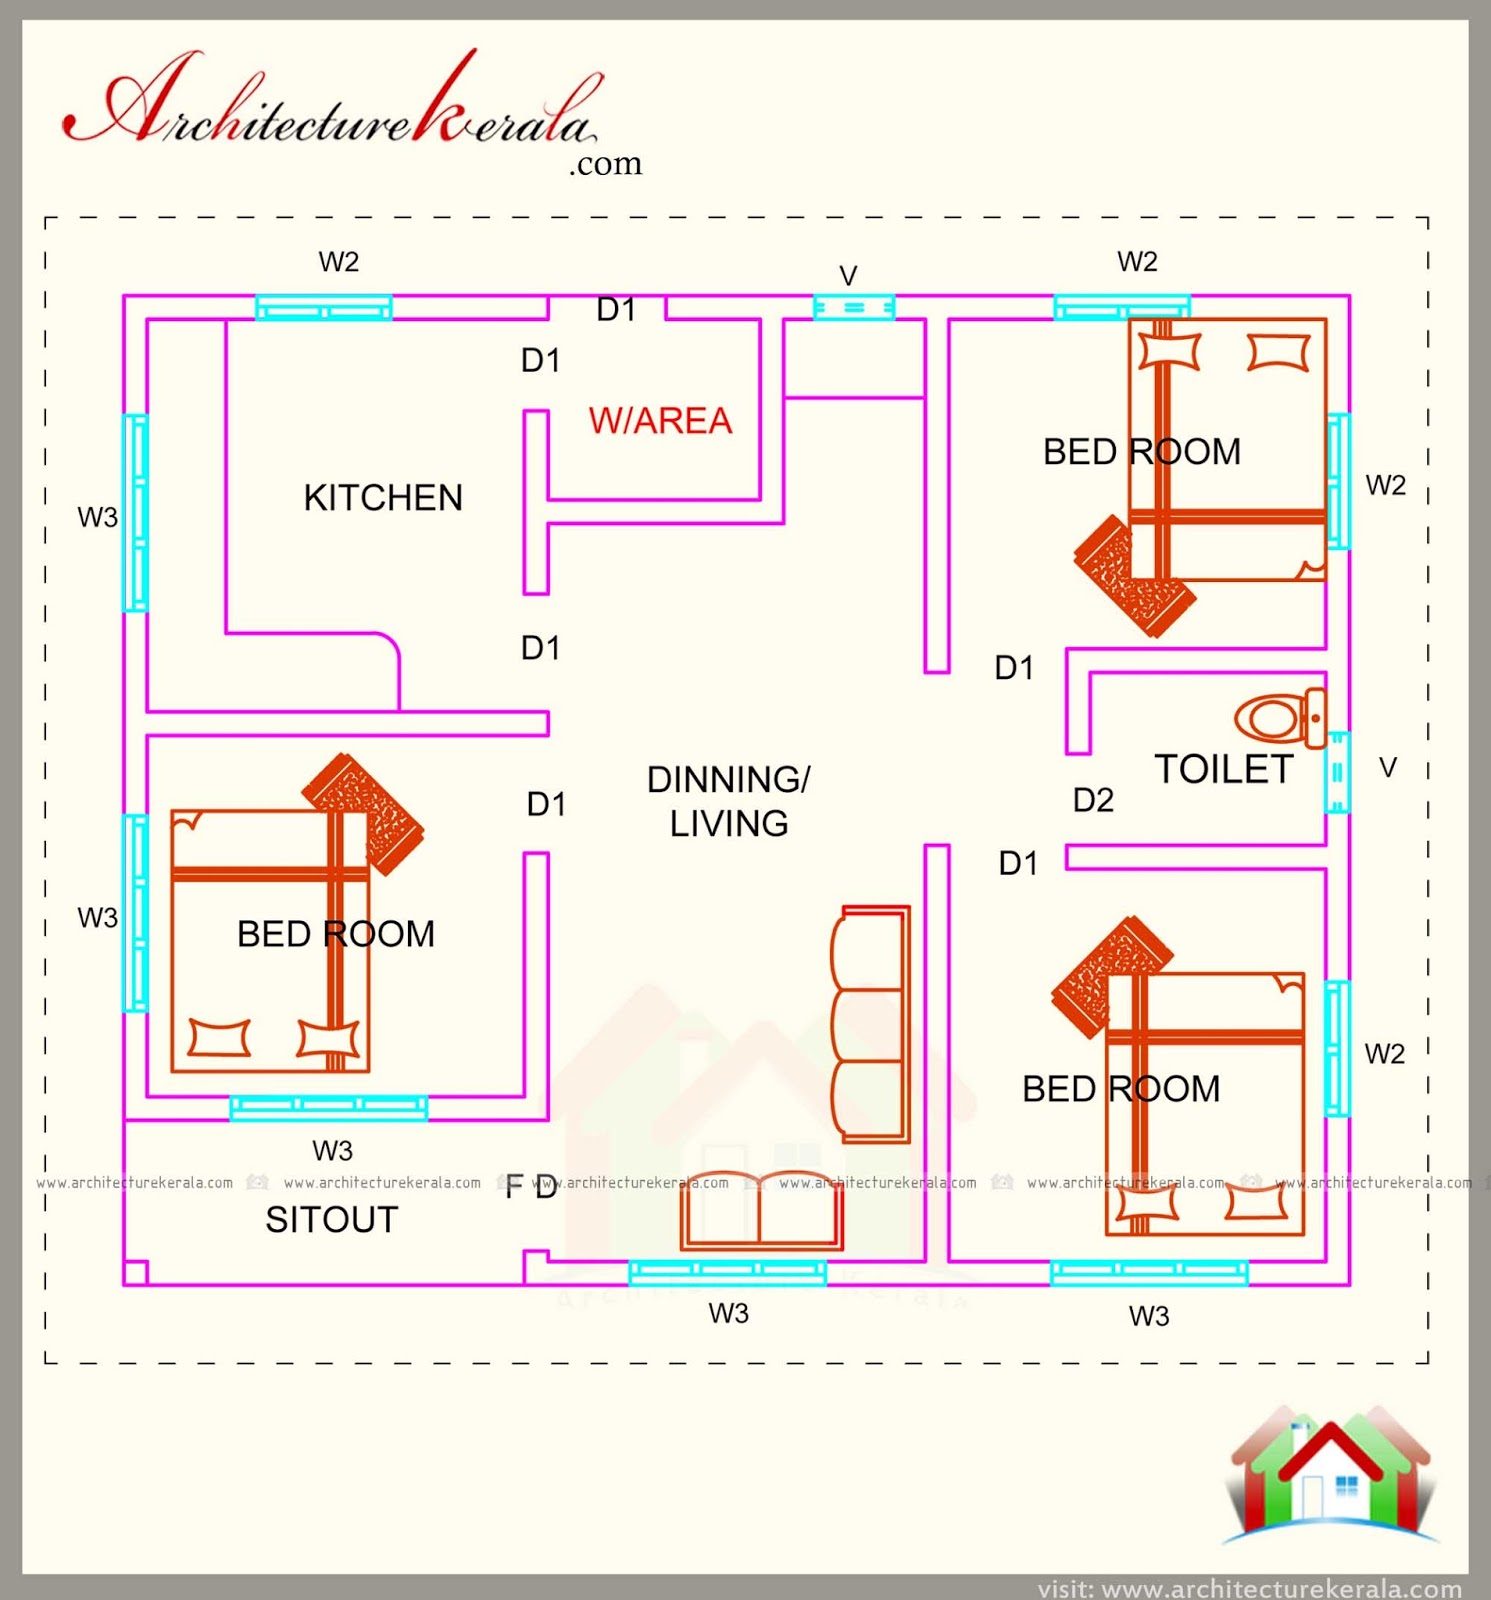 760 square feet 3 bedroom house plan architecture kerala for 5000 sq ft house plans in kerala